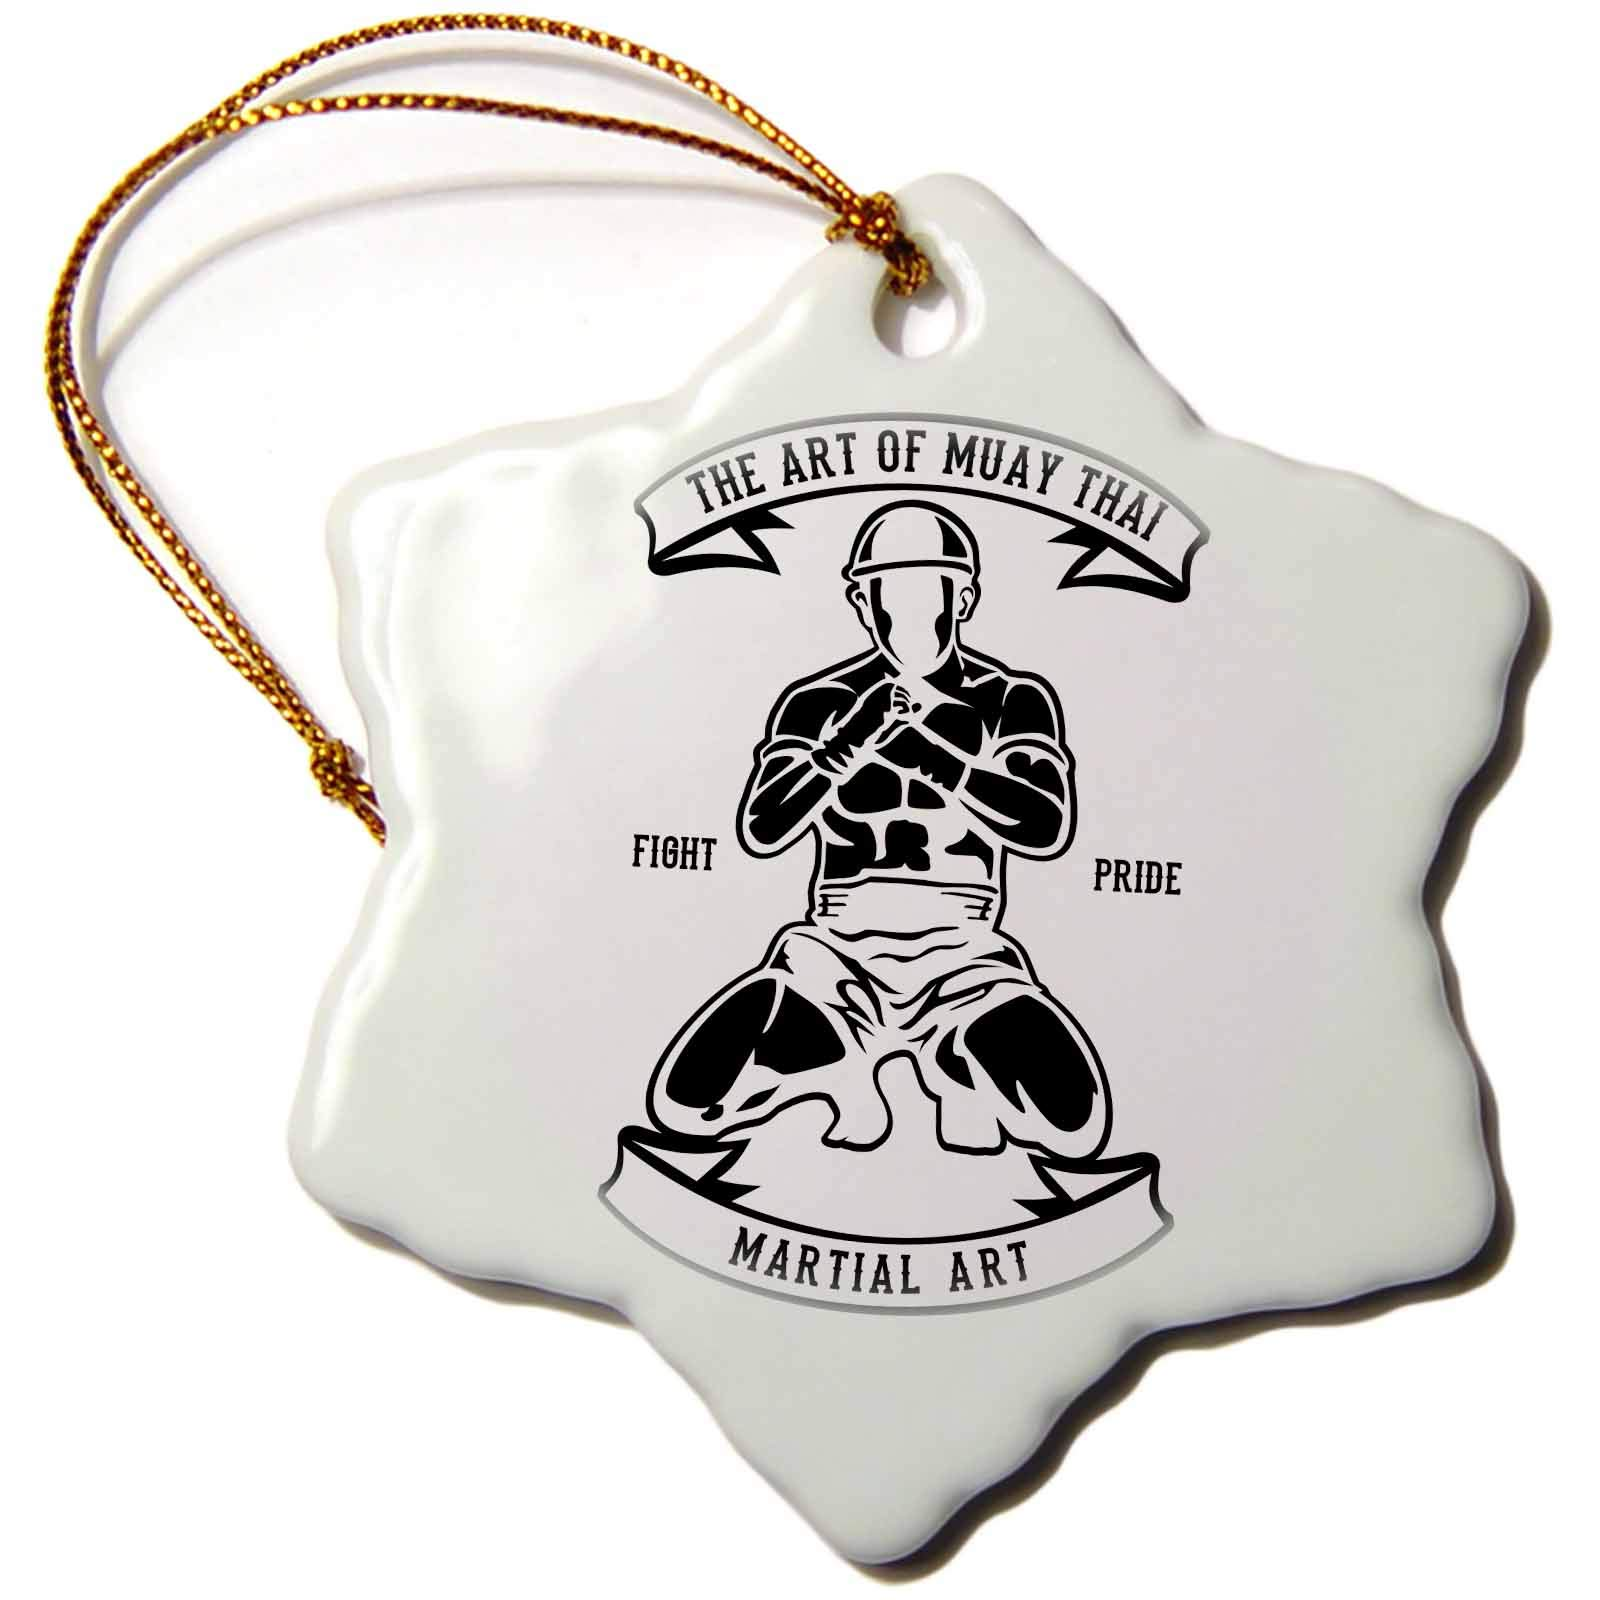 3dRose Alexis Design - Vintage - Image of Martial Arts Fighter. The Art of Muay Thai. Fight Pride - 3 inch Snowflake Porcelain Ornament (ORN_292303_1)